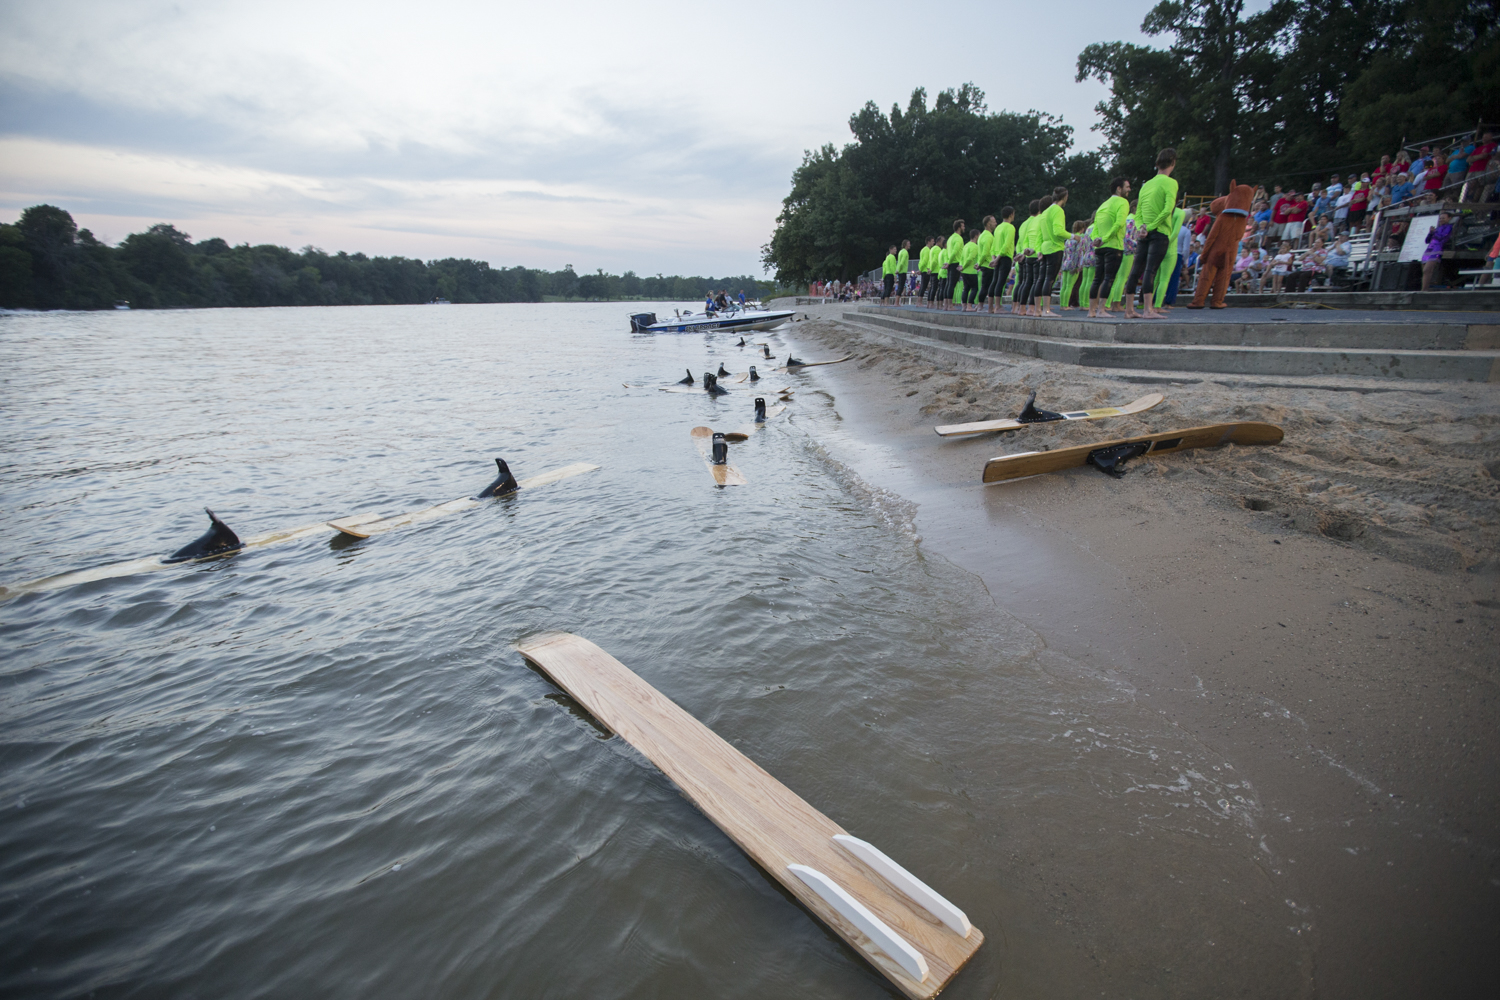 Skis litter the shoreline during the final stage presentation at the conclusion of the show on Friday, Aug. 3, 2018, at Shorewood Park in Loves Park. [SCOTT P. YATES/RRSTAR.COM STAFF]